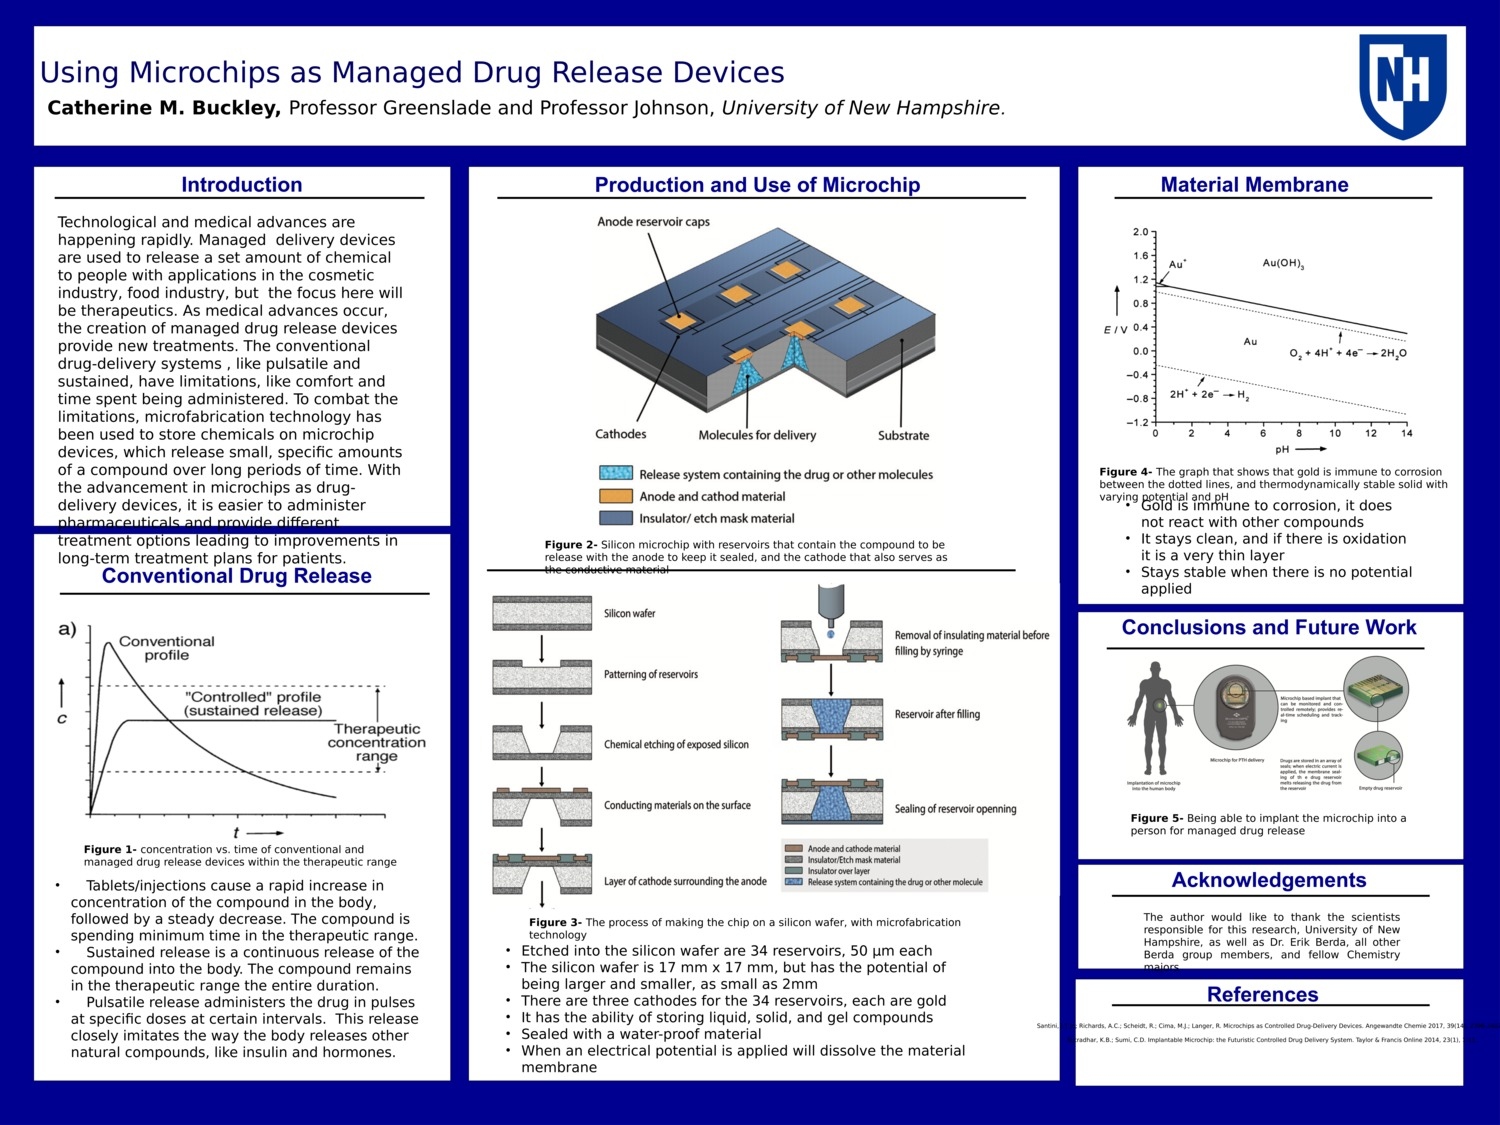 Using Microchips As Managed Drug Release Devices  by cmb2005